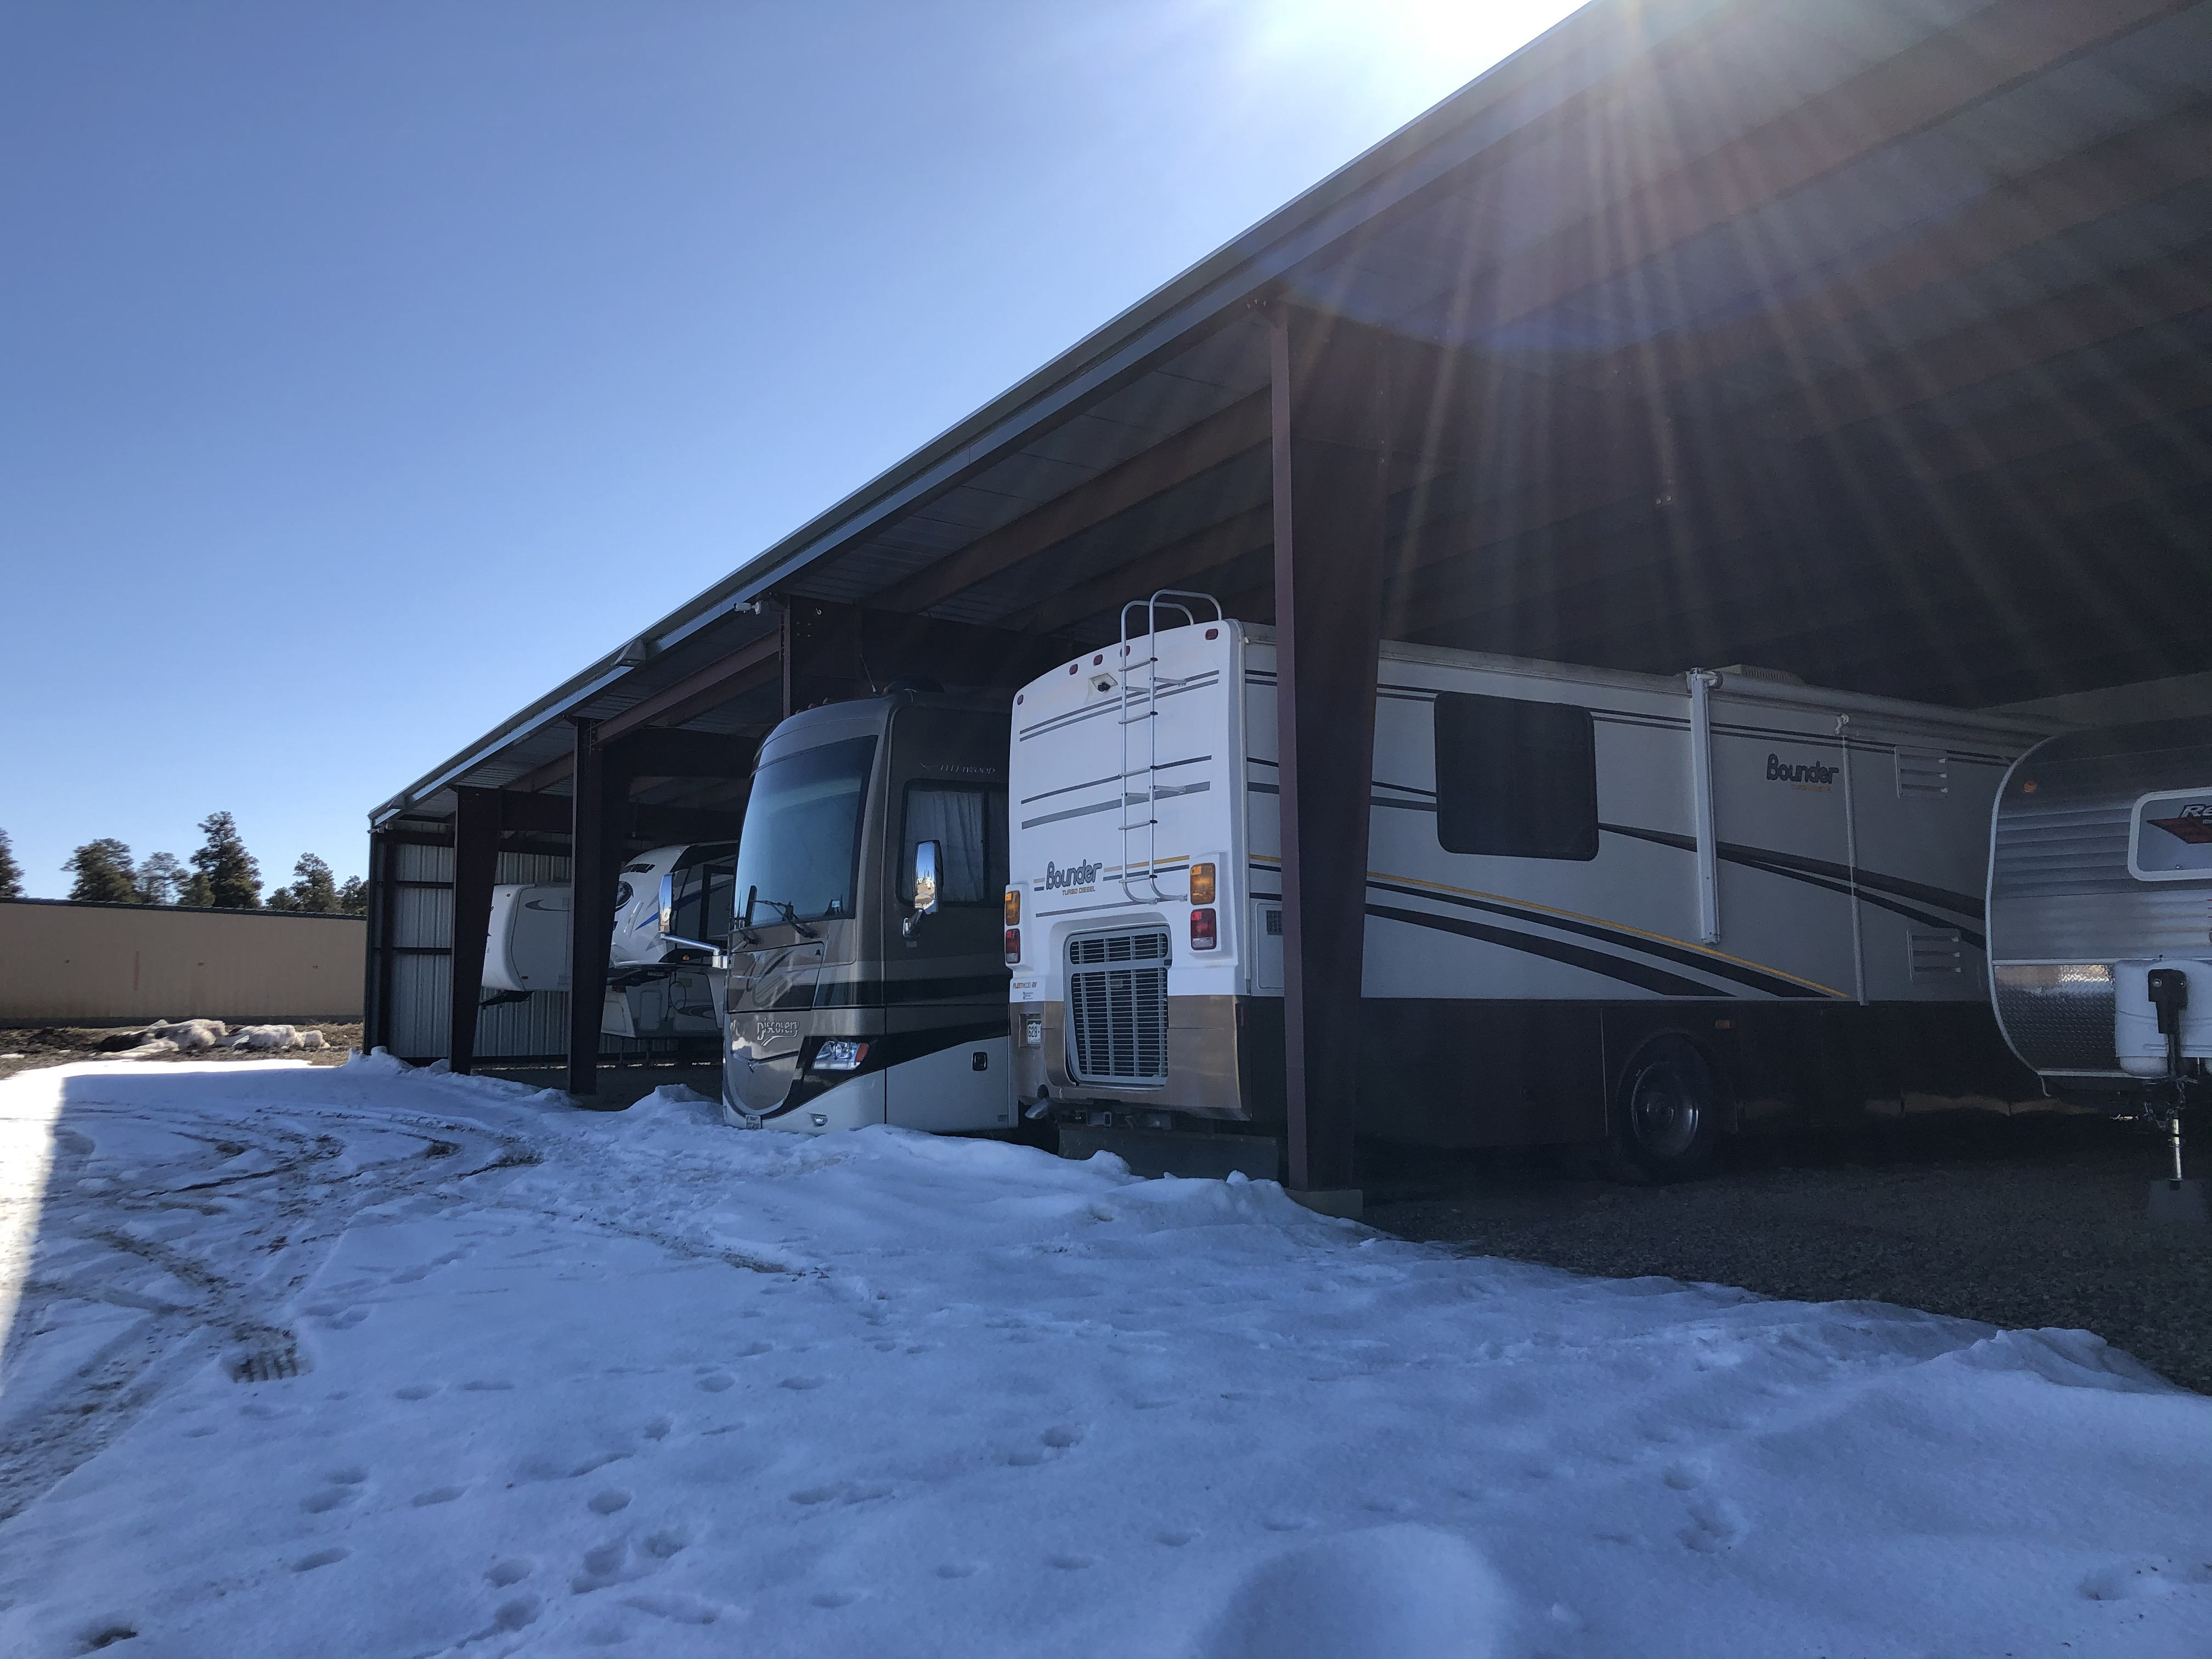 covered rv storage mini outside storage facility pagosa springs storage lockers storage units moving supplies boxes mini storage self storage tape moving tape trailer rentals rv parking covered rv parking rental car parking uhaul rentals dollies